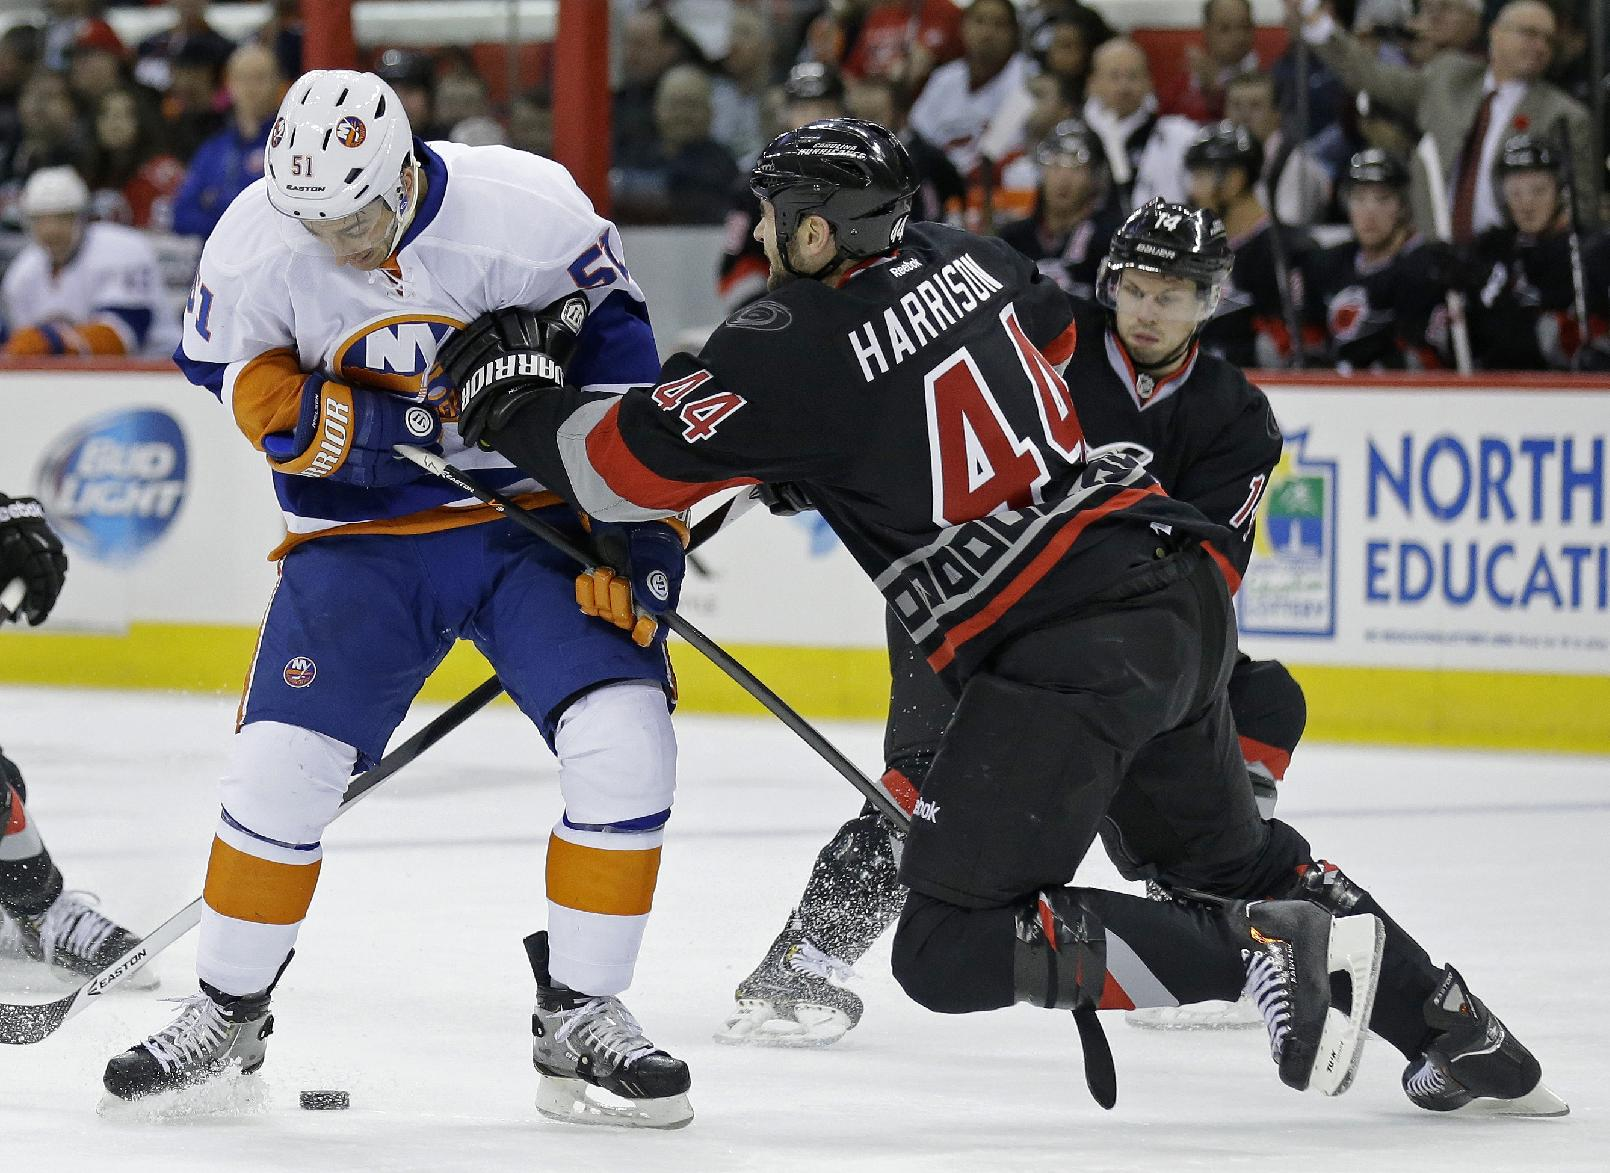 Carolina Hurricanes' Jay Harrison (44) defends against New York Islanders' Frans Nielsen (51), of Denmark, during the first period of an NHL hockey game in Raleigh, N.C., Thursday, Nov. 7, 2013